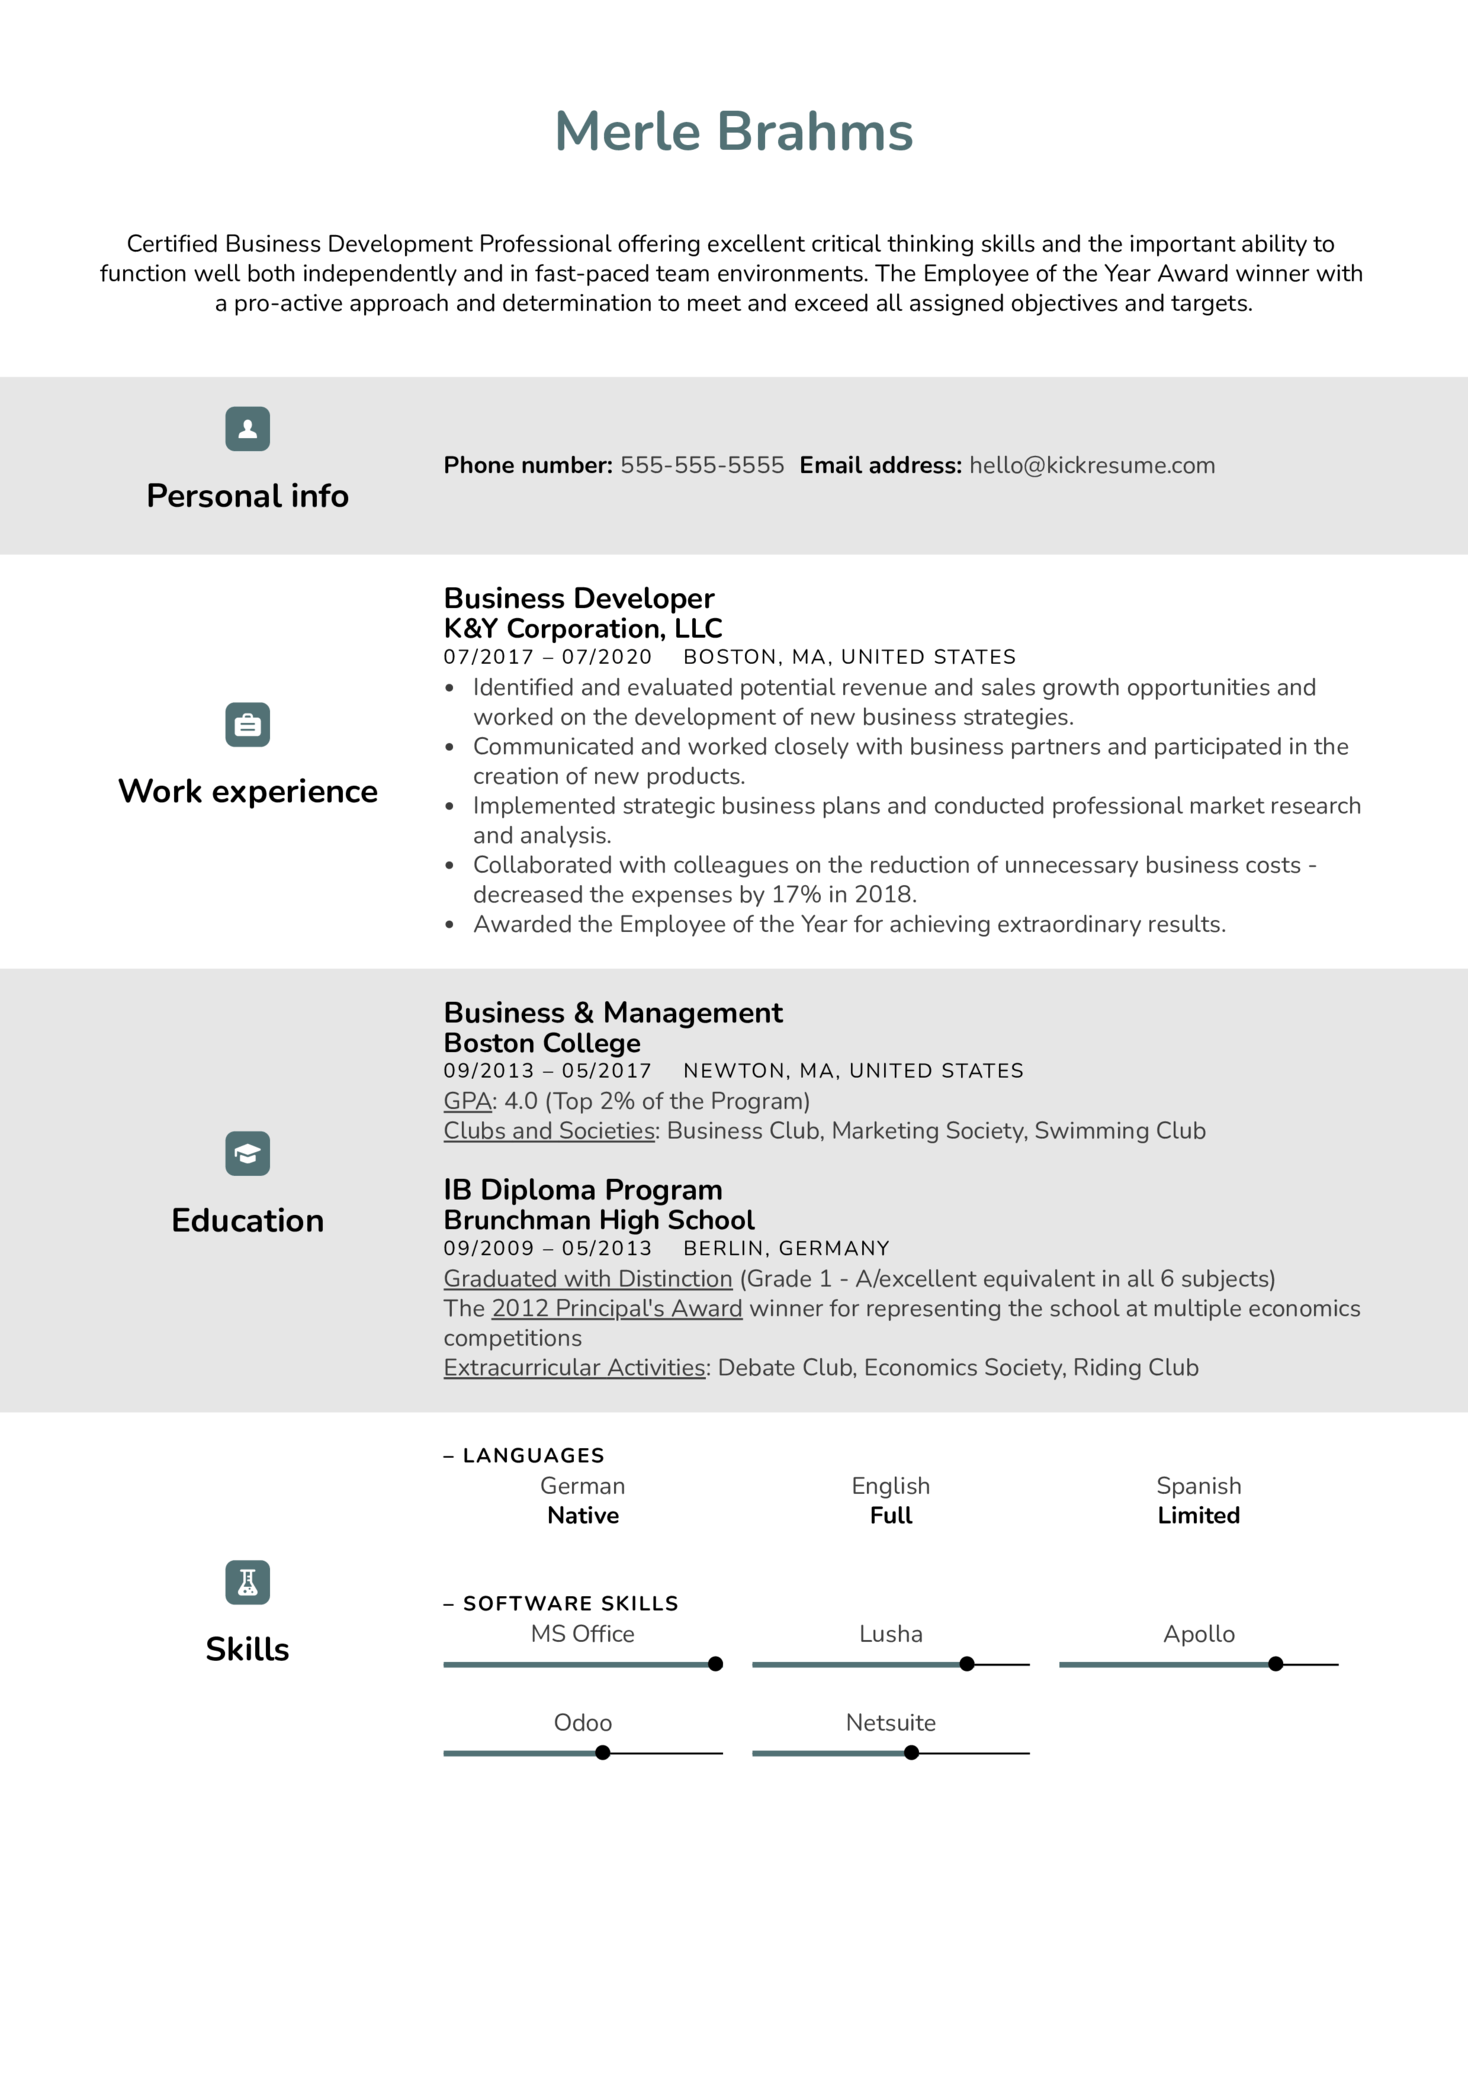 Business Developer Resume Example (Part 1)